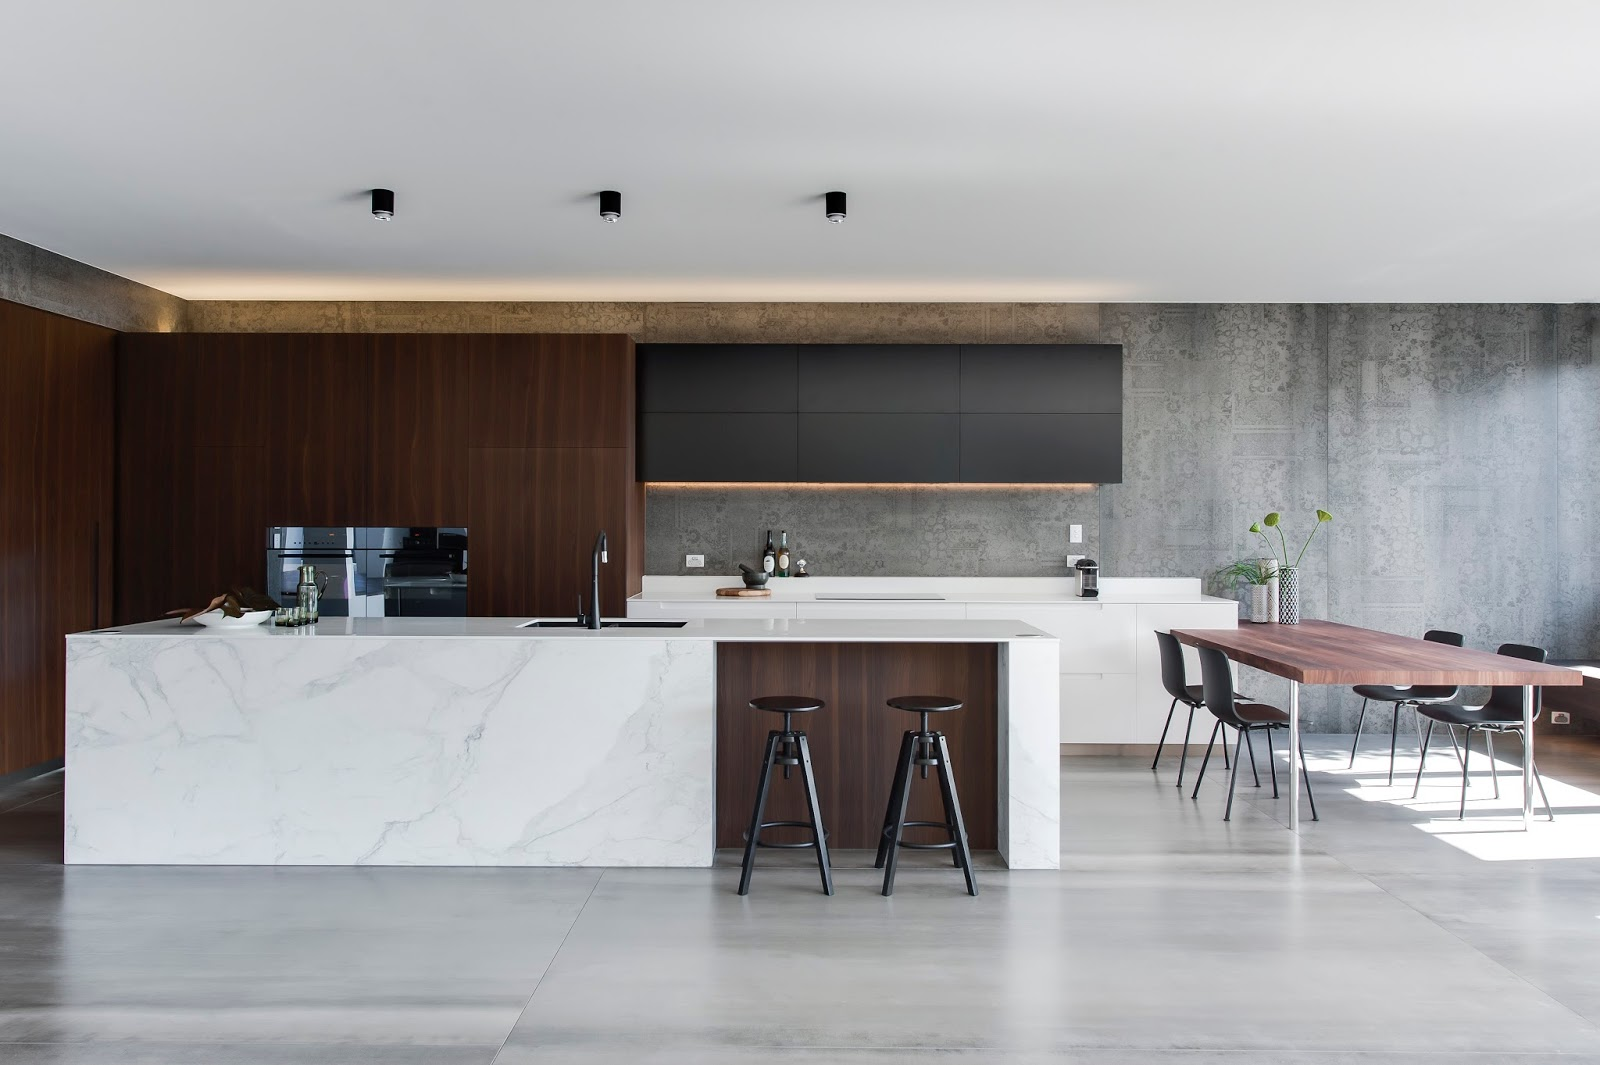 Amazing Kitchens Designs Minosa Amazing Kitchen Design Leaves Us With House Envy